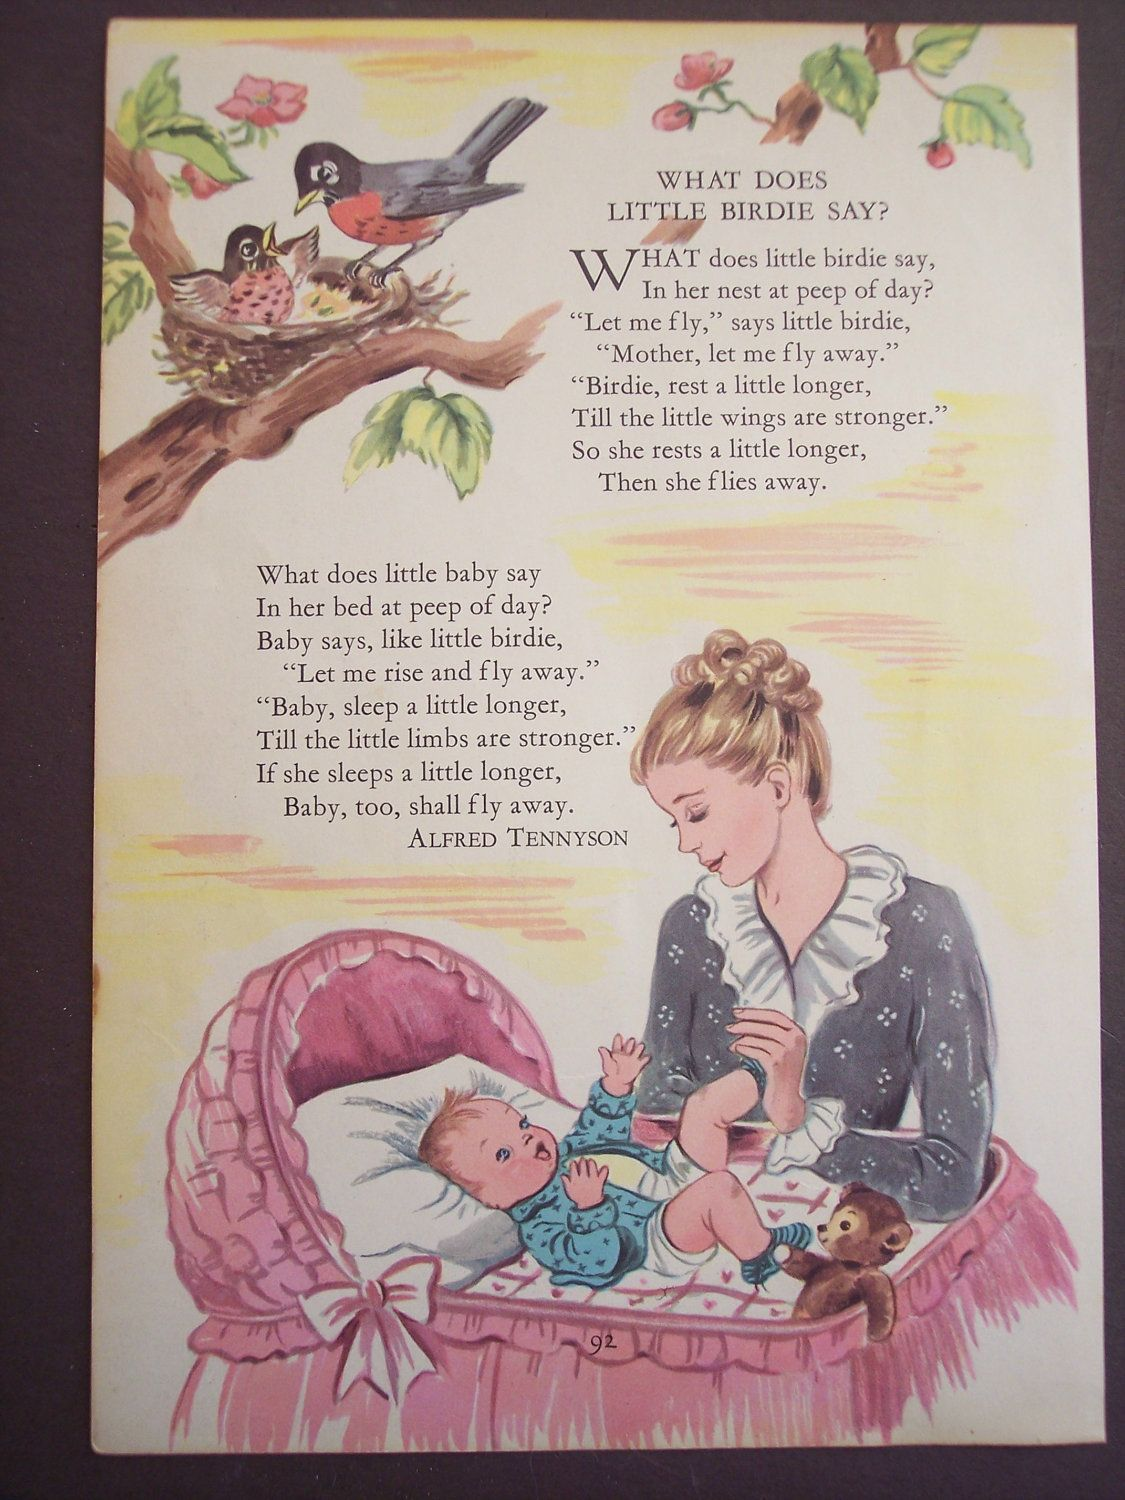 Love Vintage Nursery Rhyme Print 1948 Children S Poem Book Ilration What Does The Little Bir Say By Alfred Tennyson 9 00 Via Etsy